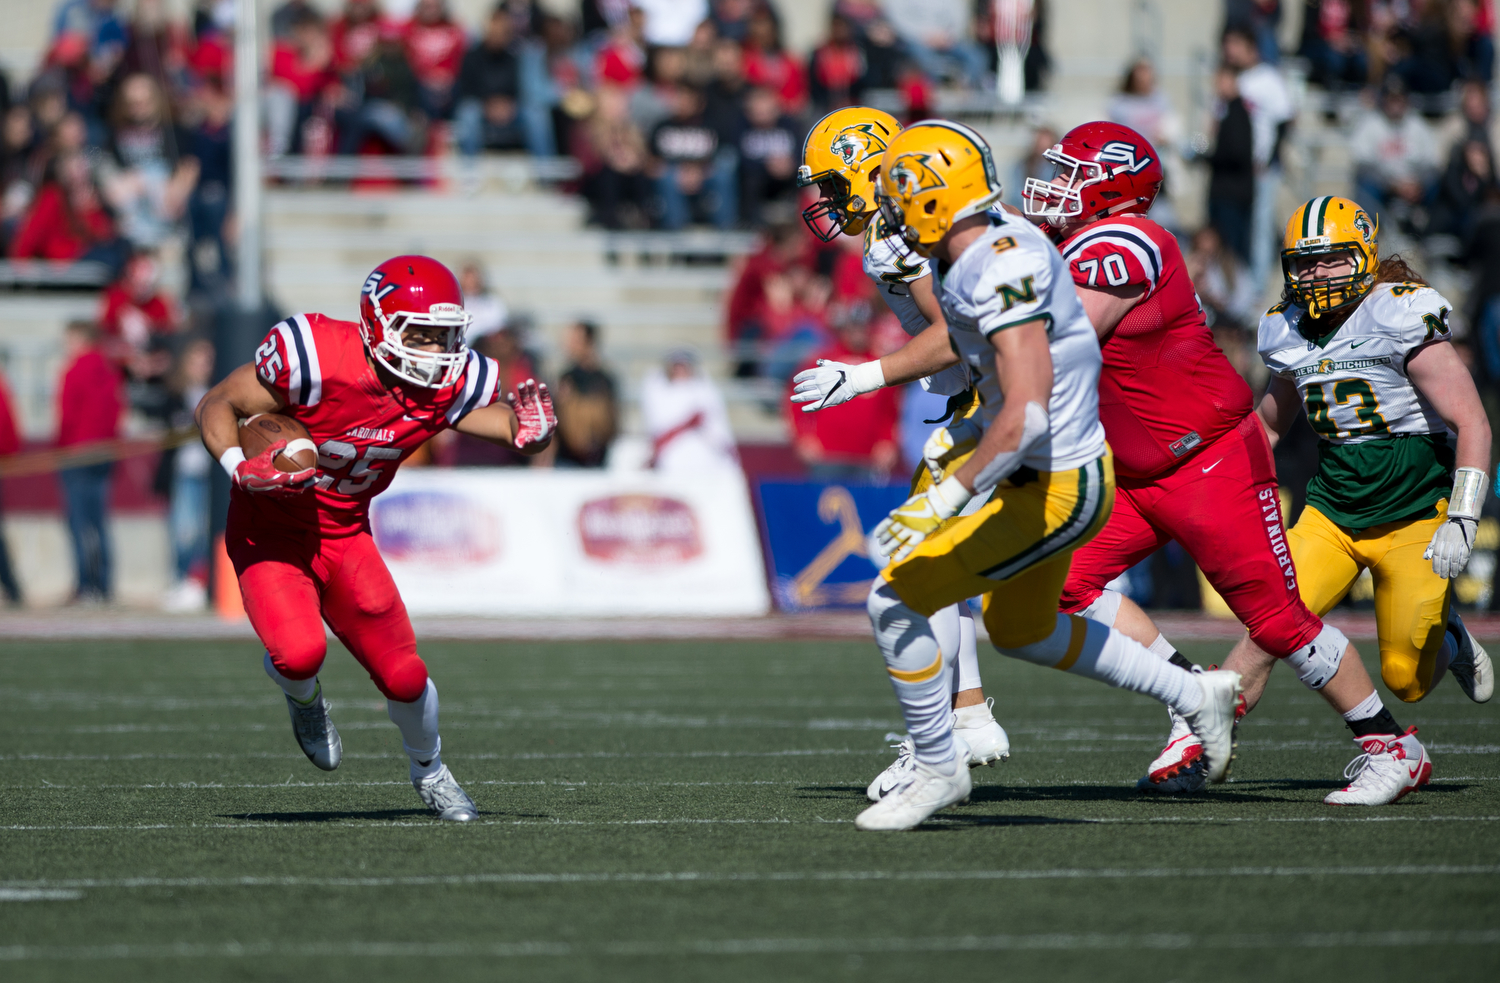 Cardinals claim homecoming victory over Northern Michigan, 30-10